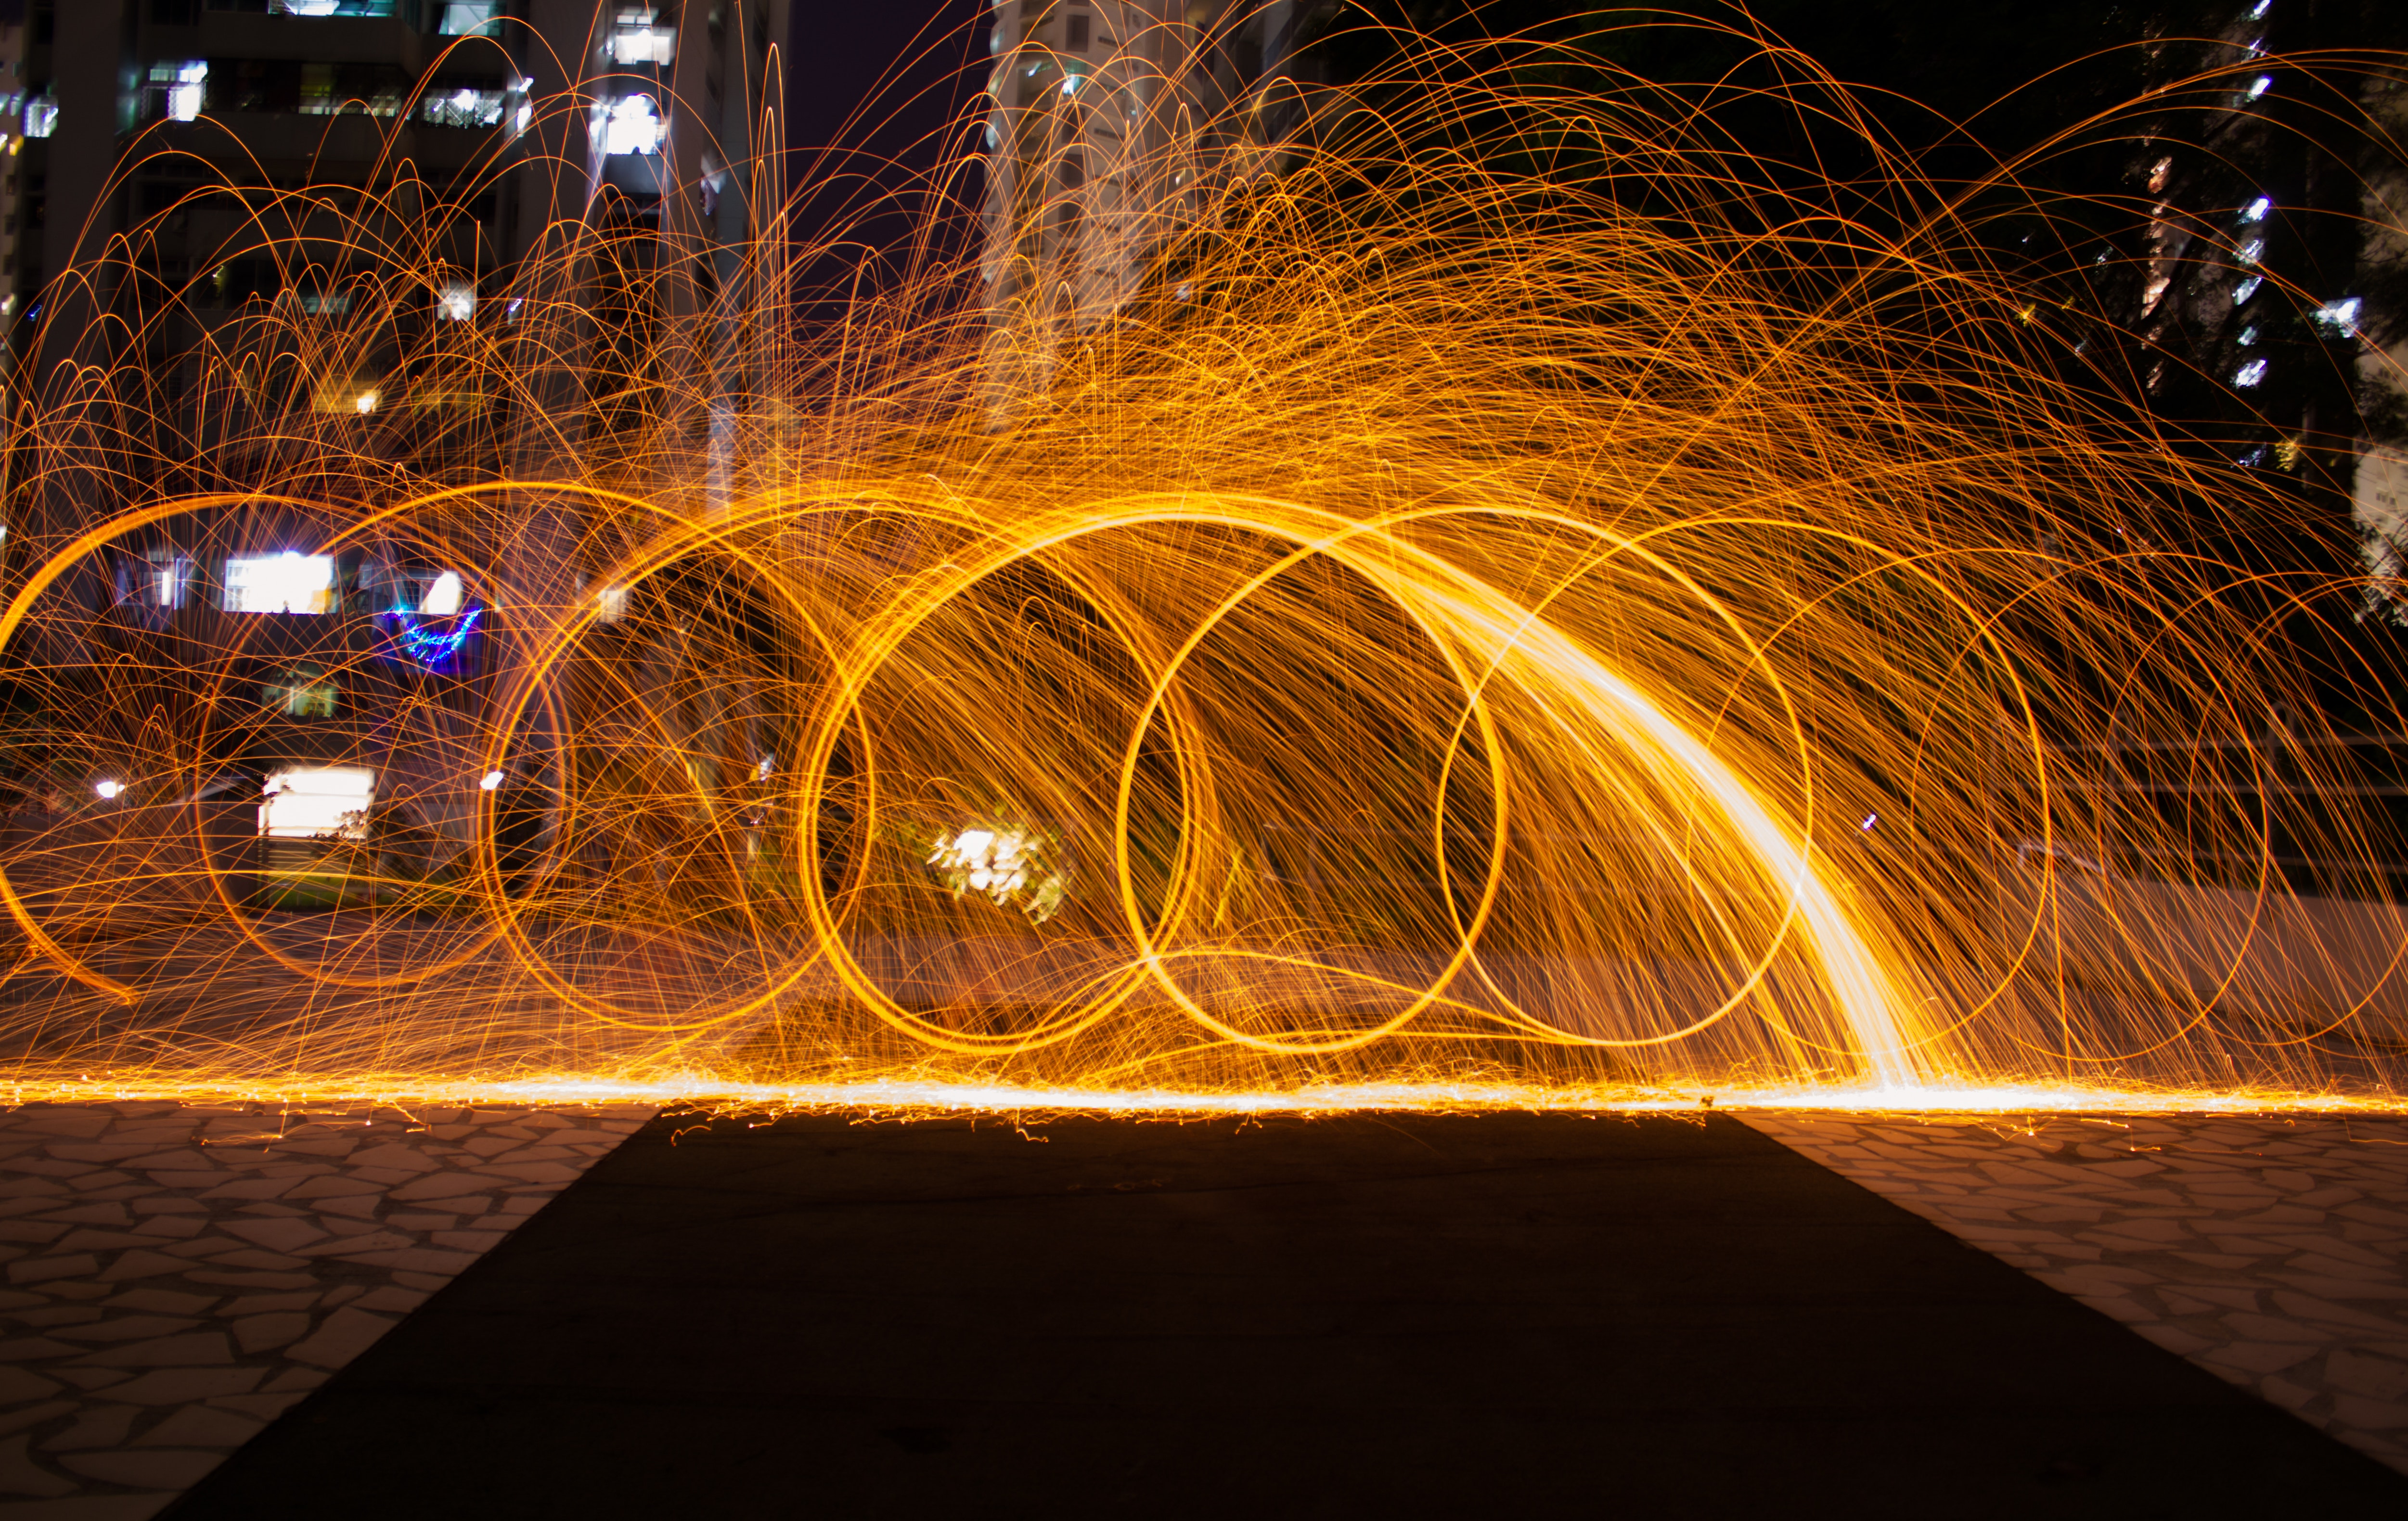 Time-lapsed Photography of Fire Crackers, Abstract, Motion, Time-lapse, Texture, HQ Photo